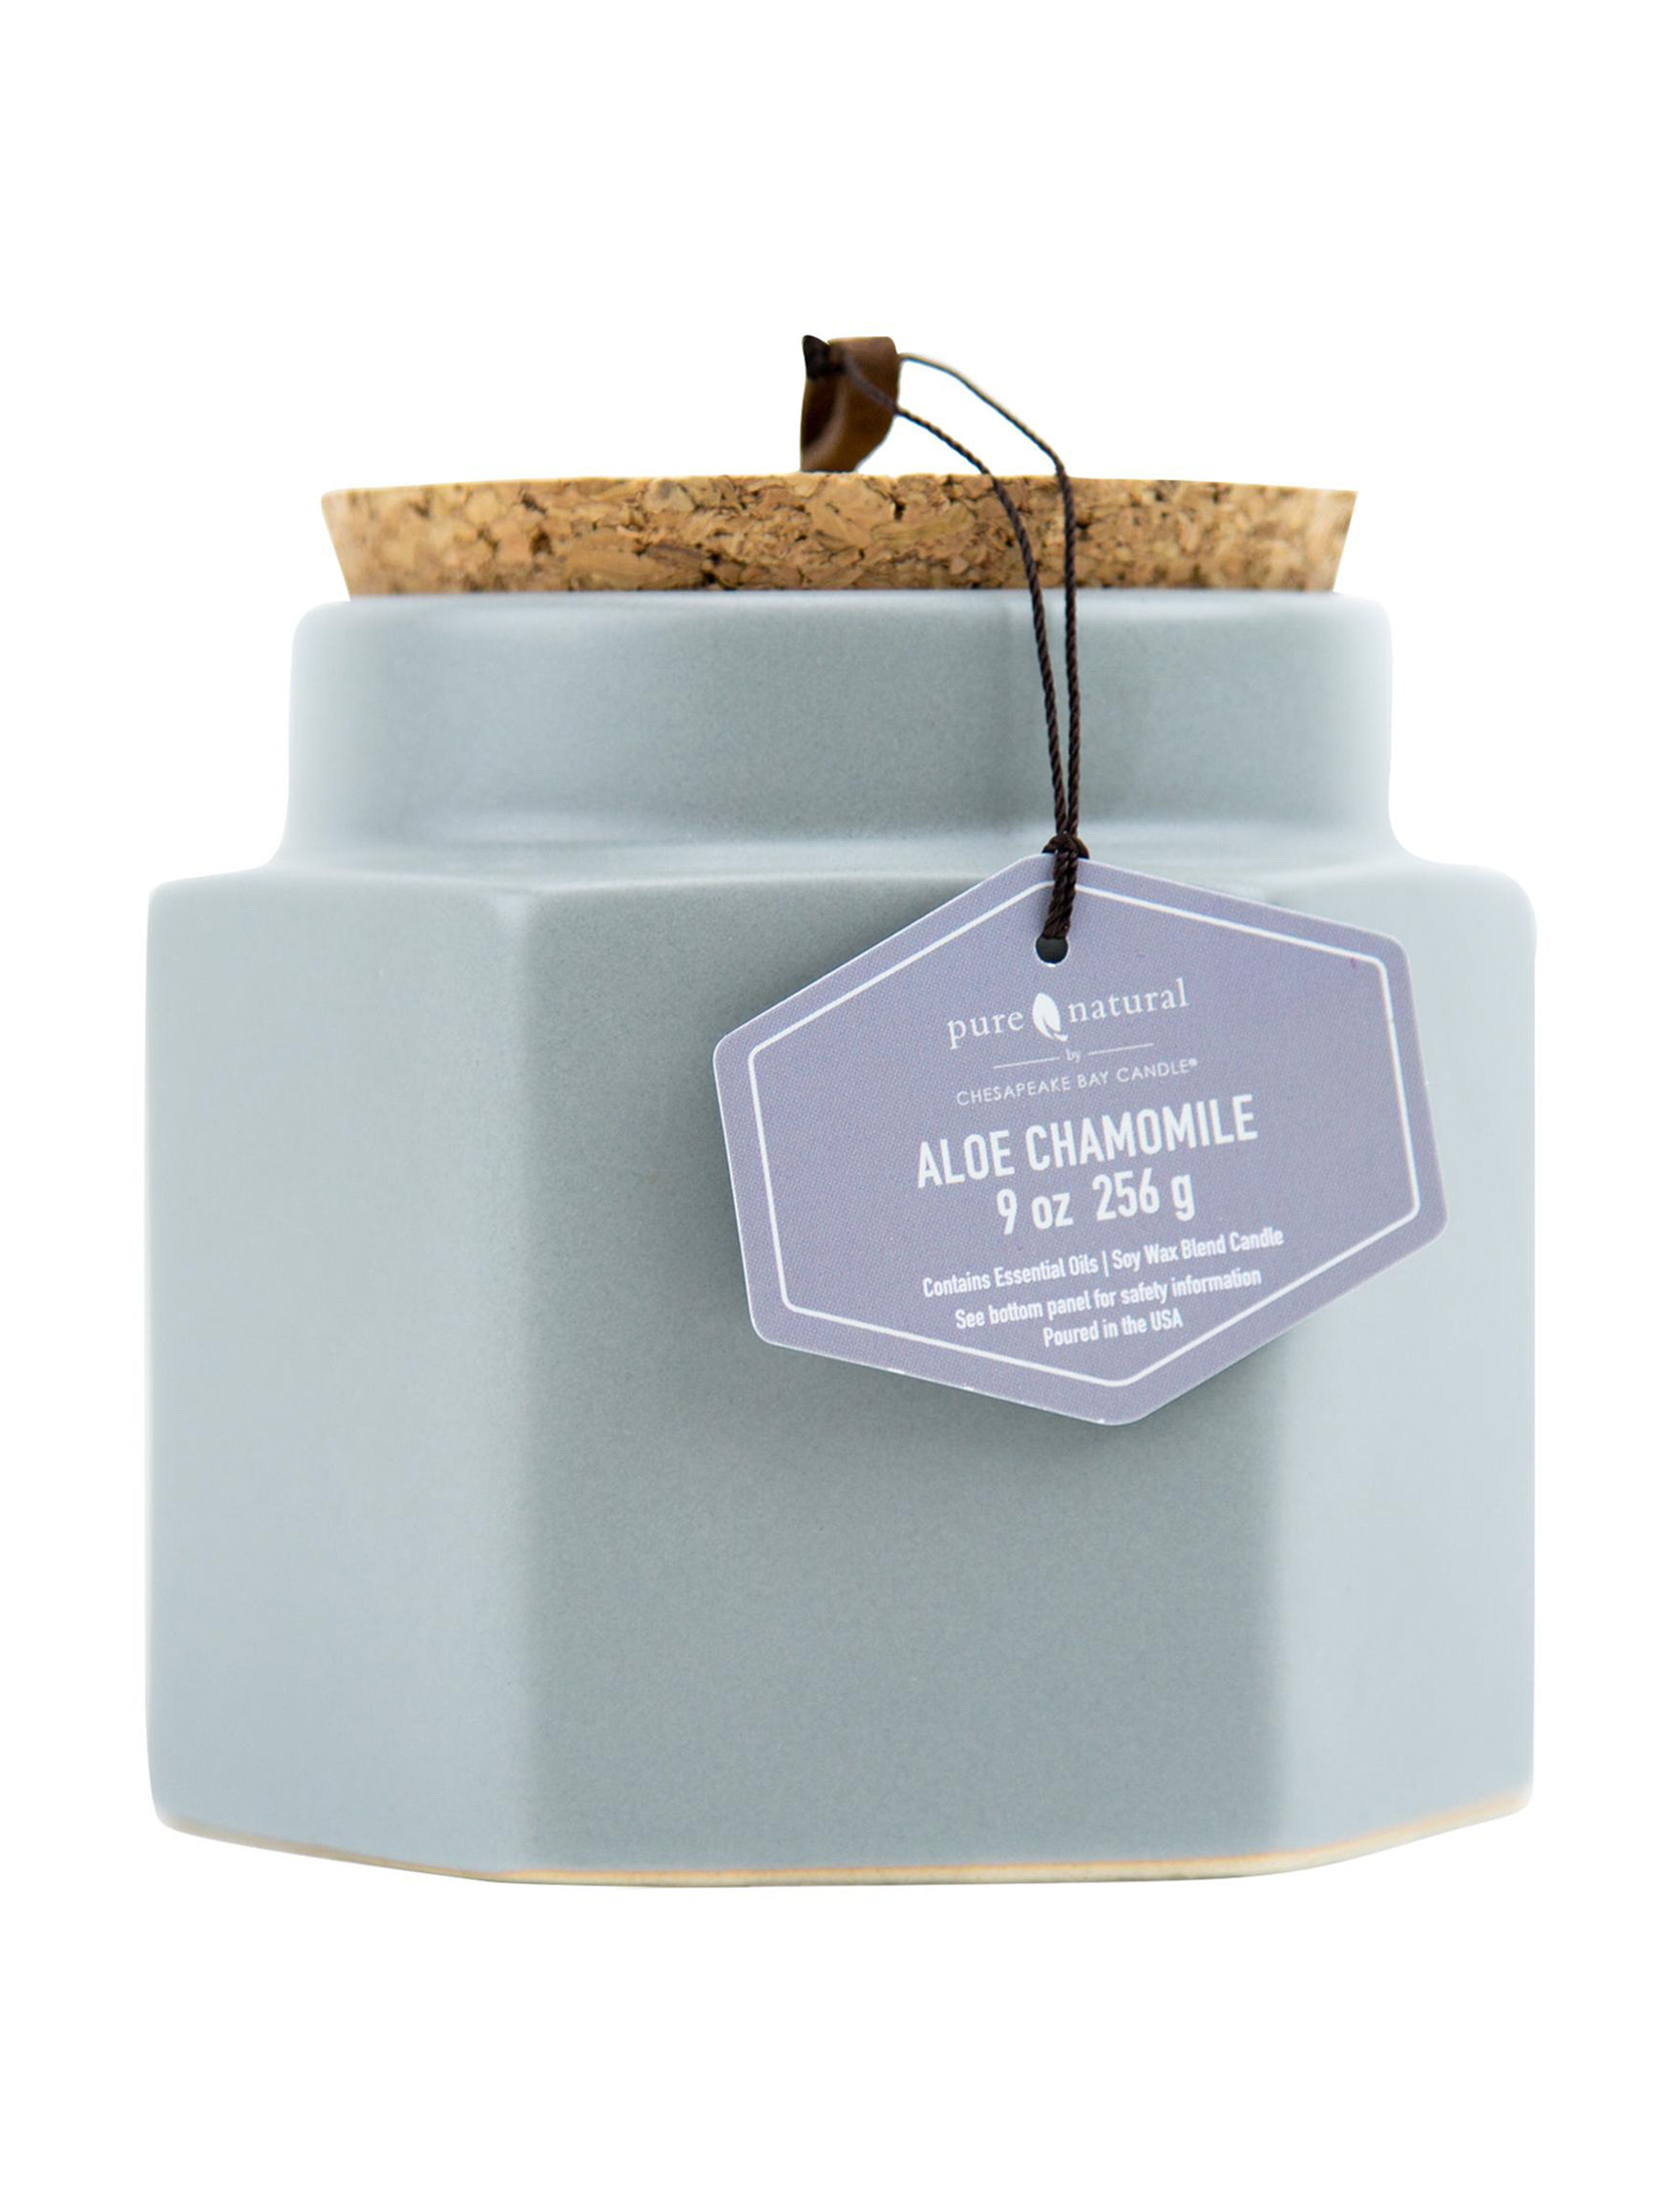 Chesapeake Bay Candle Blue Candles Candles & Diffusers